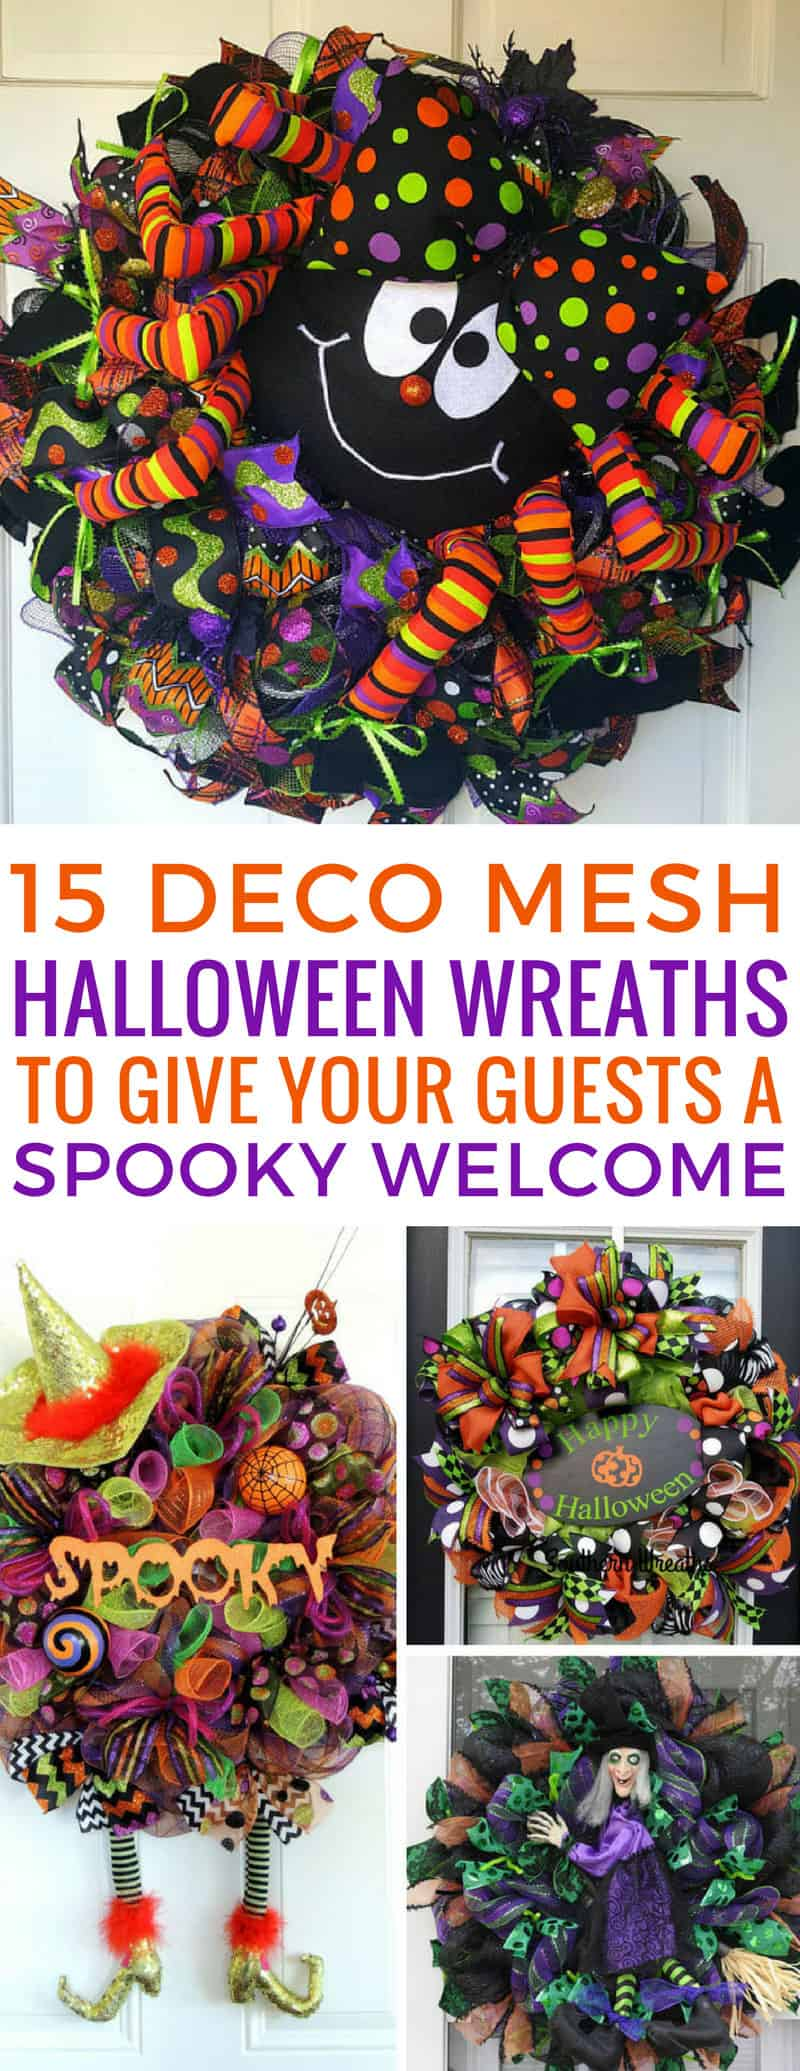 Loving these deco mesh Halloween wreaths - they're going to add some fabulous colour to my front door this Fall! Thanks for sharing!